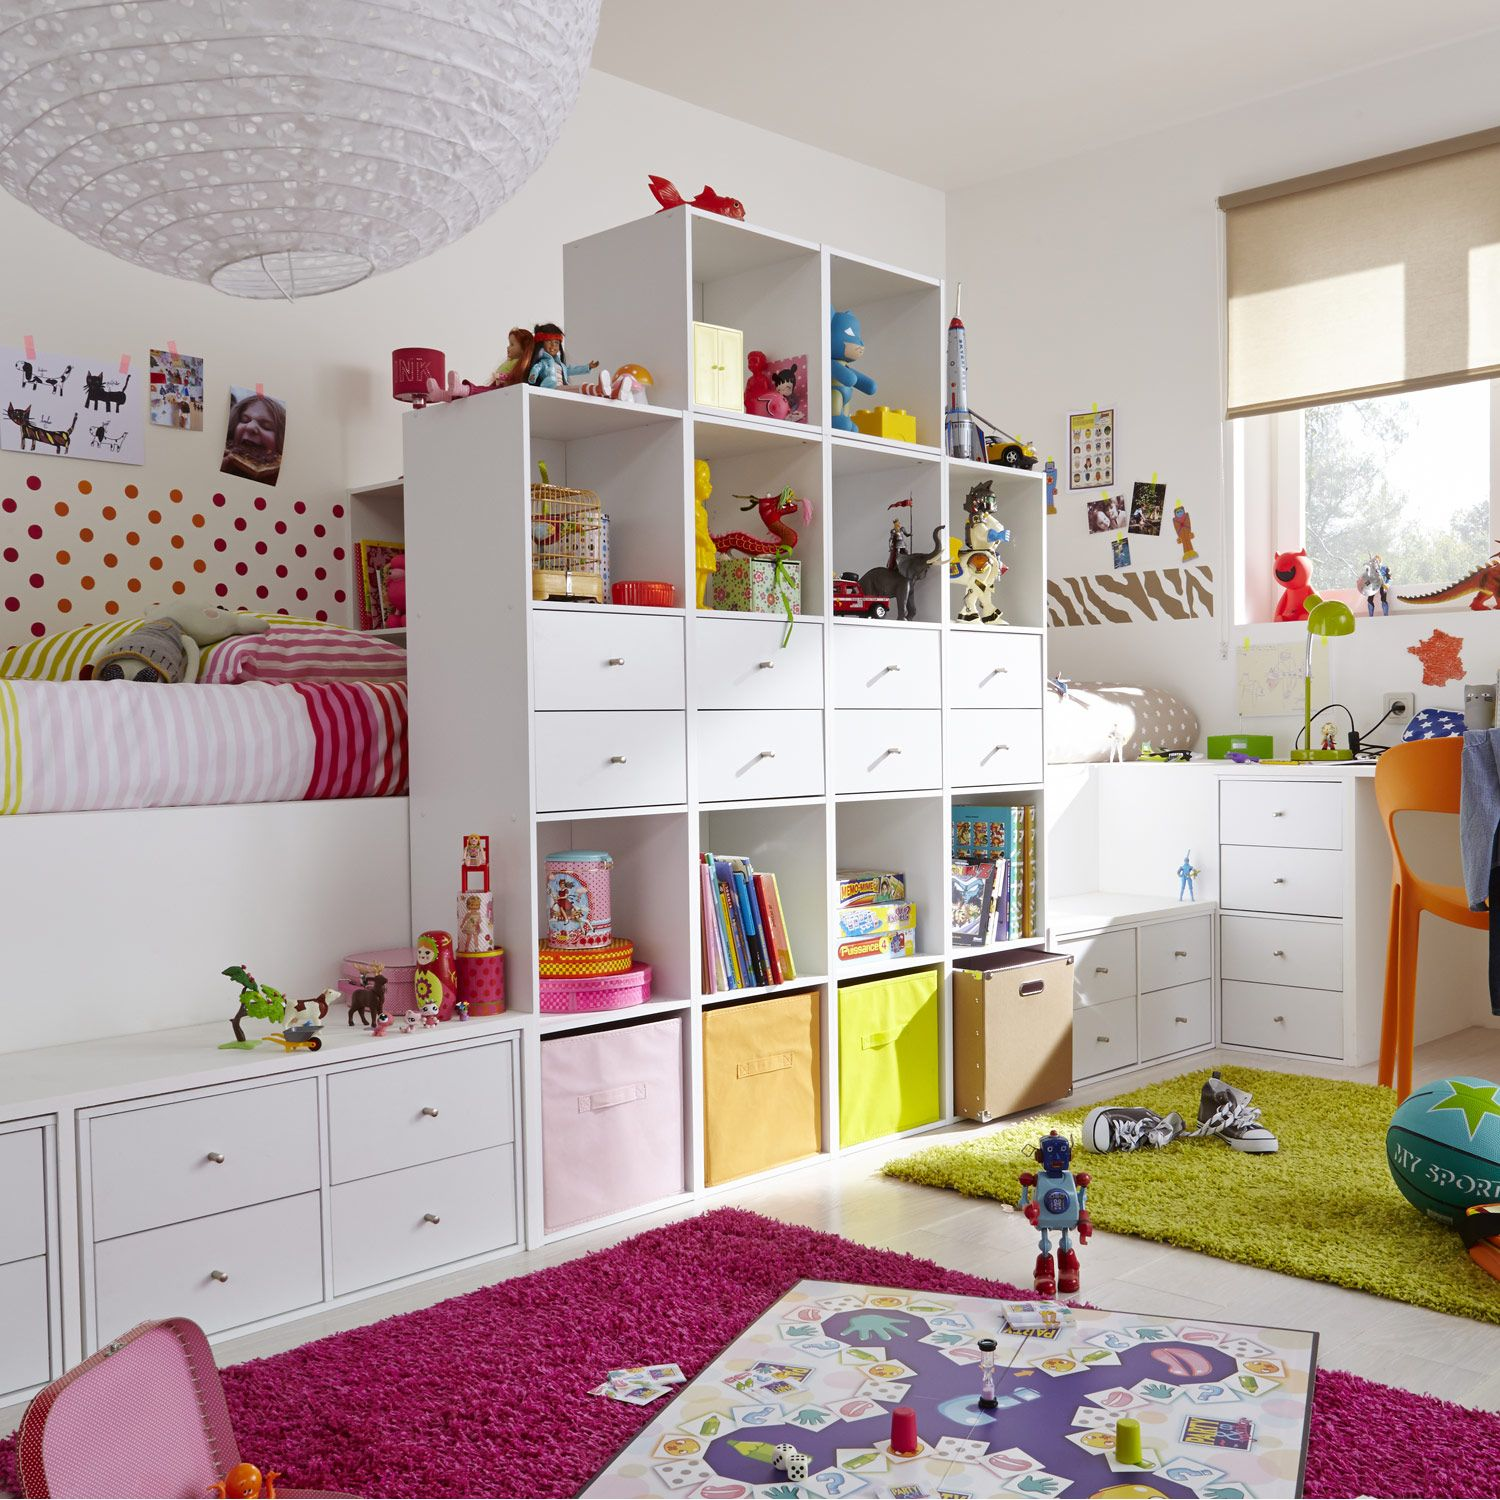 Am nagement d coratif multikaz 32 chambre d 39 enfant leroy for Chambre d enfant decoration